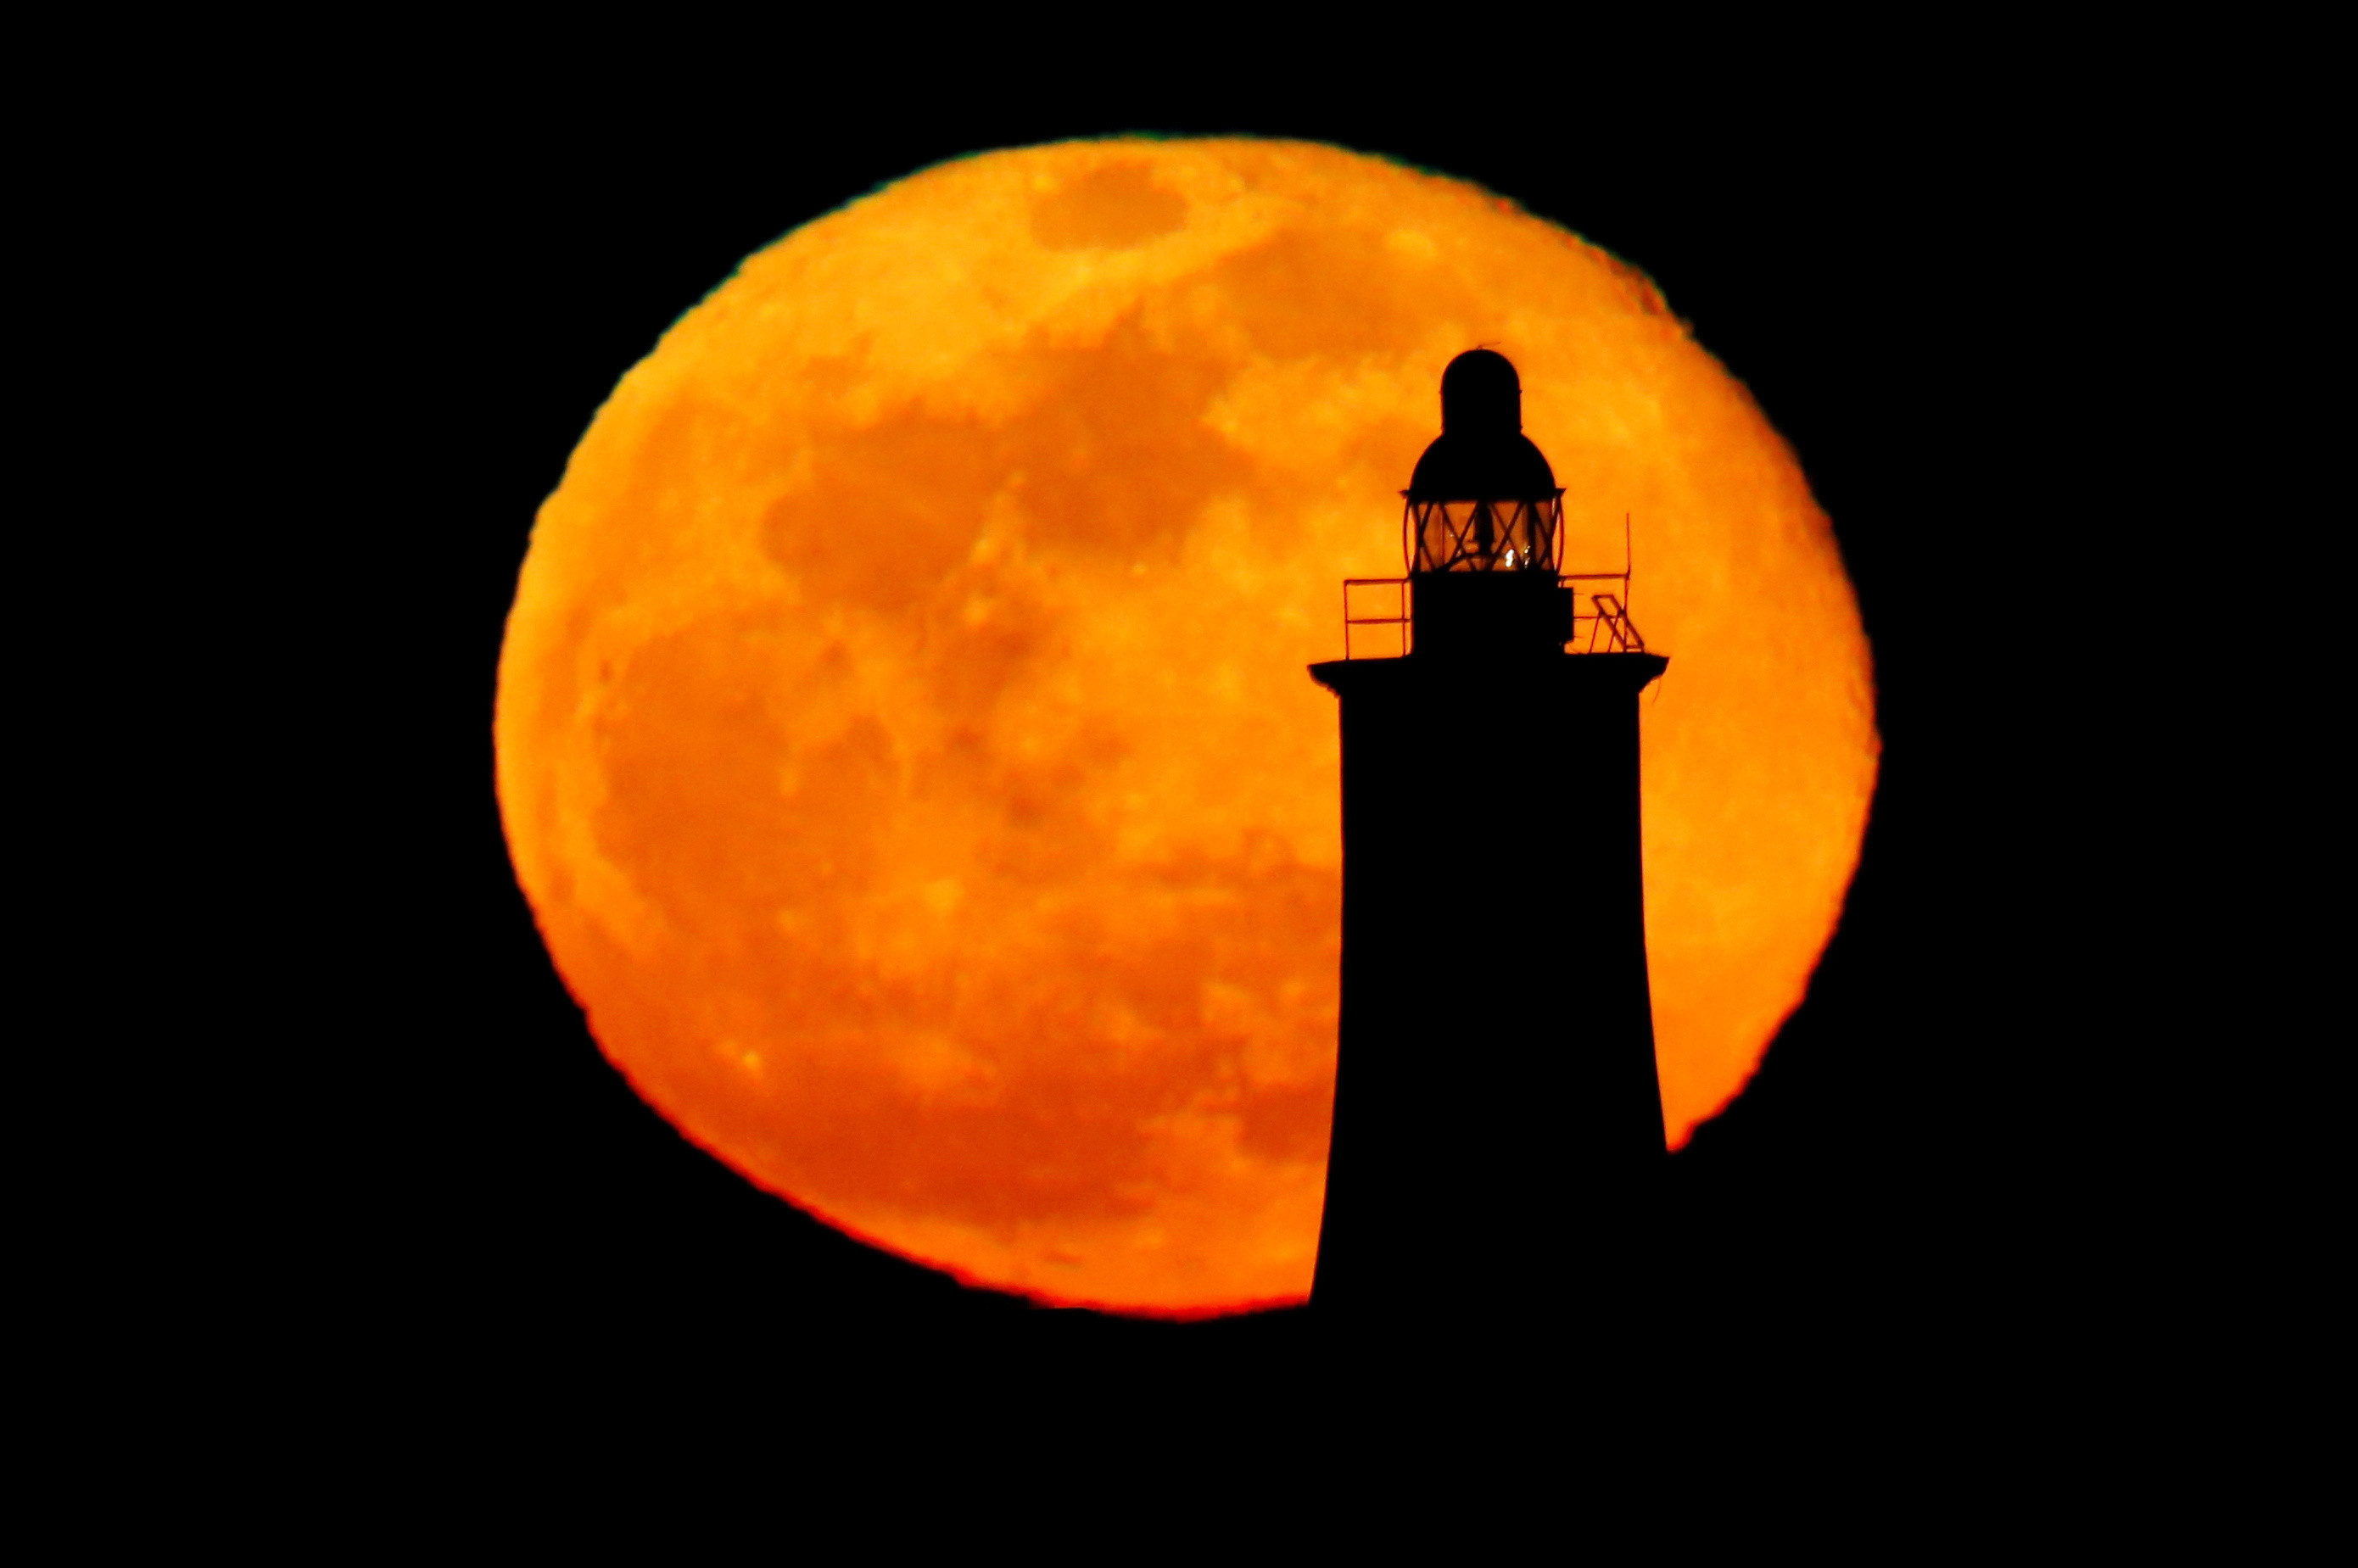 The pink supermoon, the biggest full moon of 2020, rises behind a lighthouse in Valletta, Malta April 8, 2020. REUTERS/Darrin Zammit Lupi - RC2I0G9MIUJM